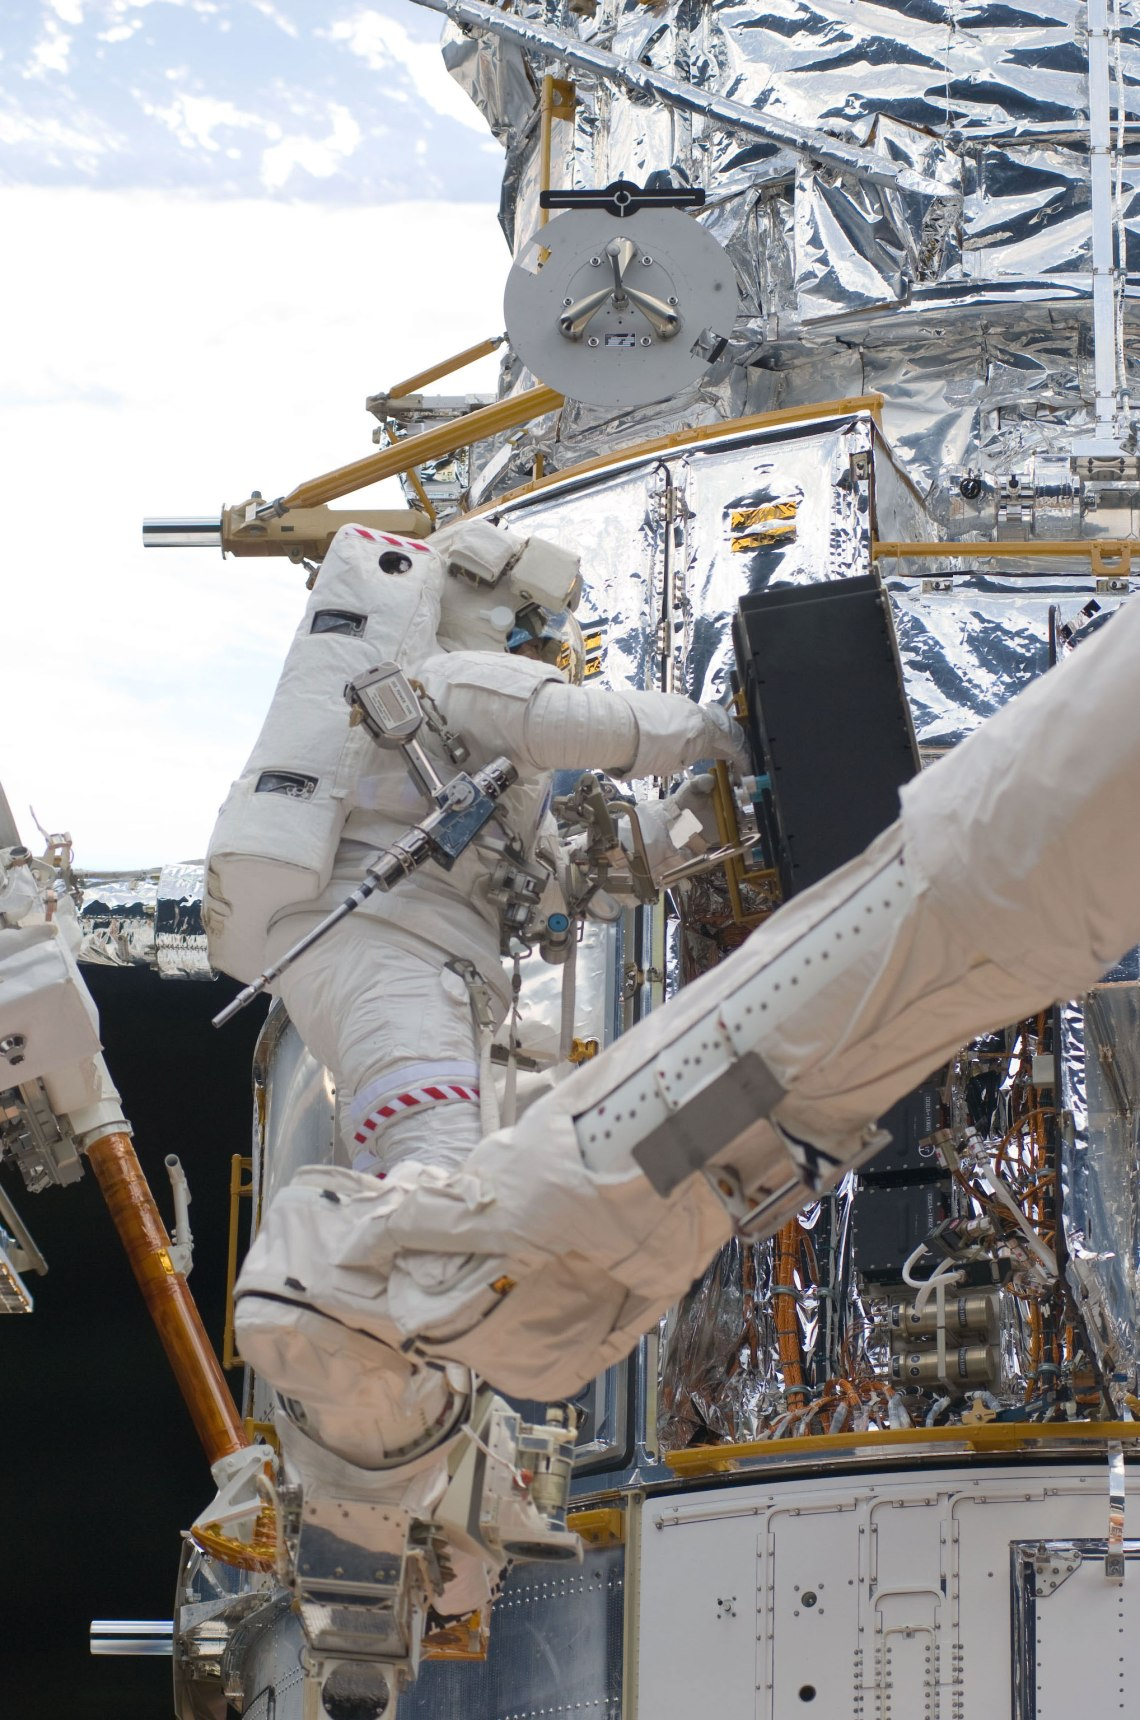 While standing on the end of Atlantis' RMS arm, STS-125 mission specialist Michael Good works on the Hubble Space Telescope. Good and fellow mission specialist Mike Massimino (out of frame) continue work on the HST, locked down in the orbiter's cargo bay. Credit: NASA